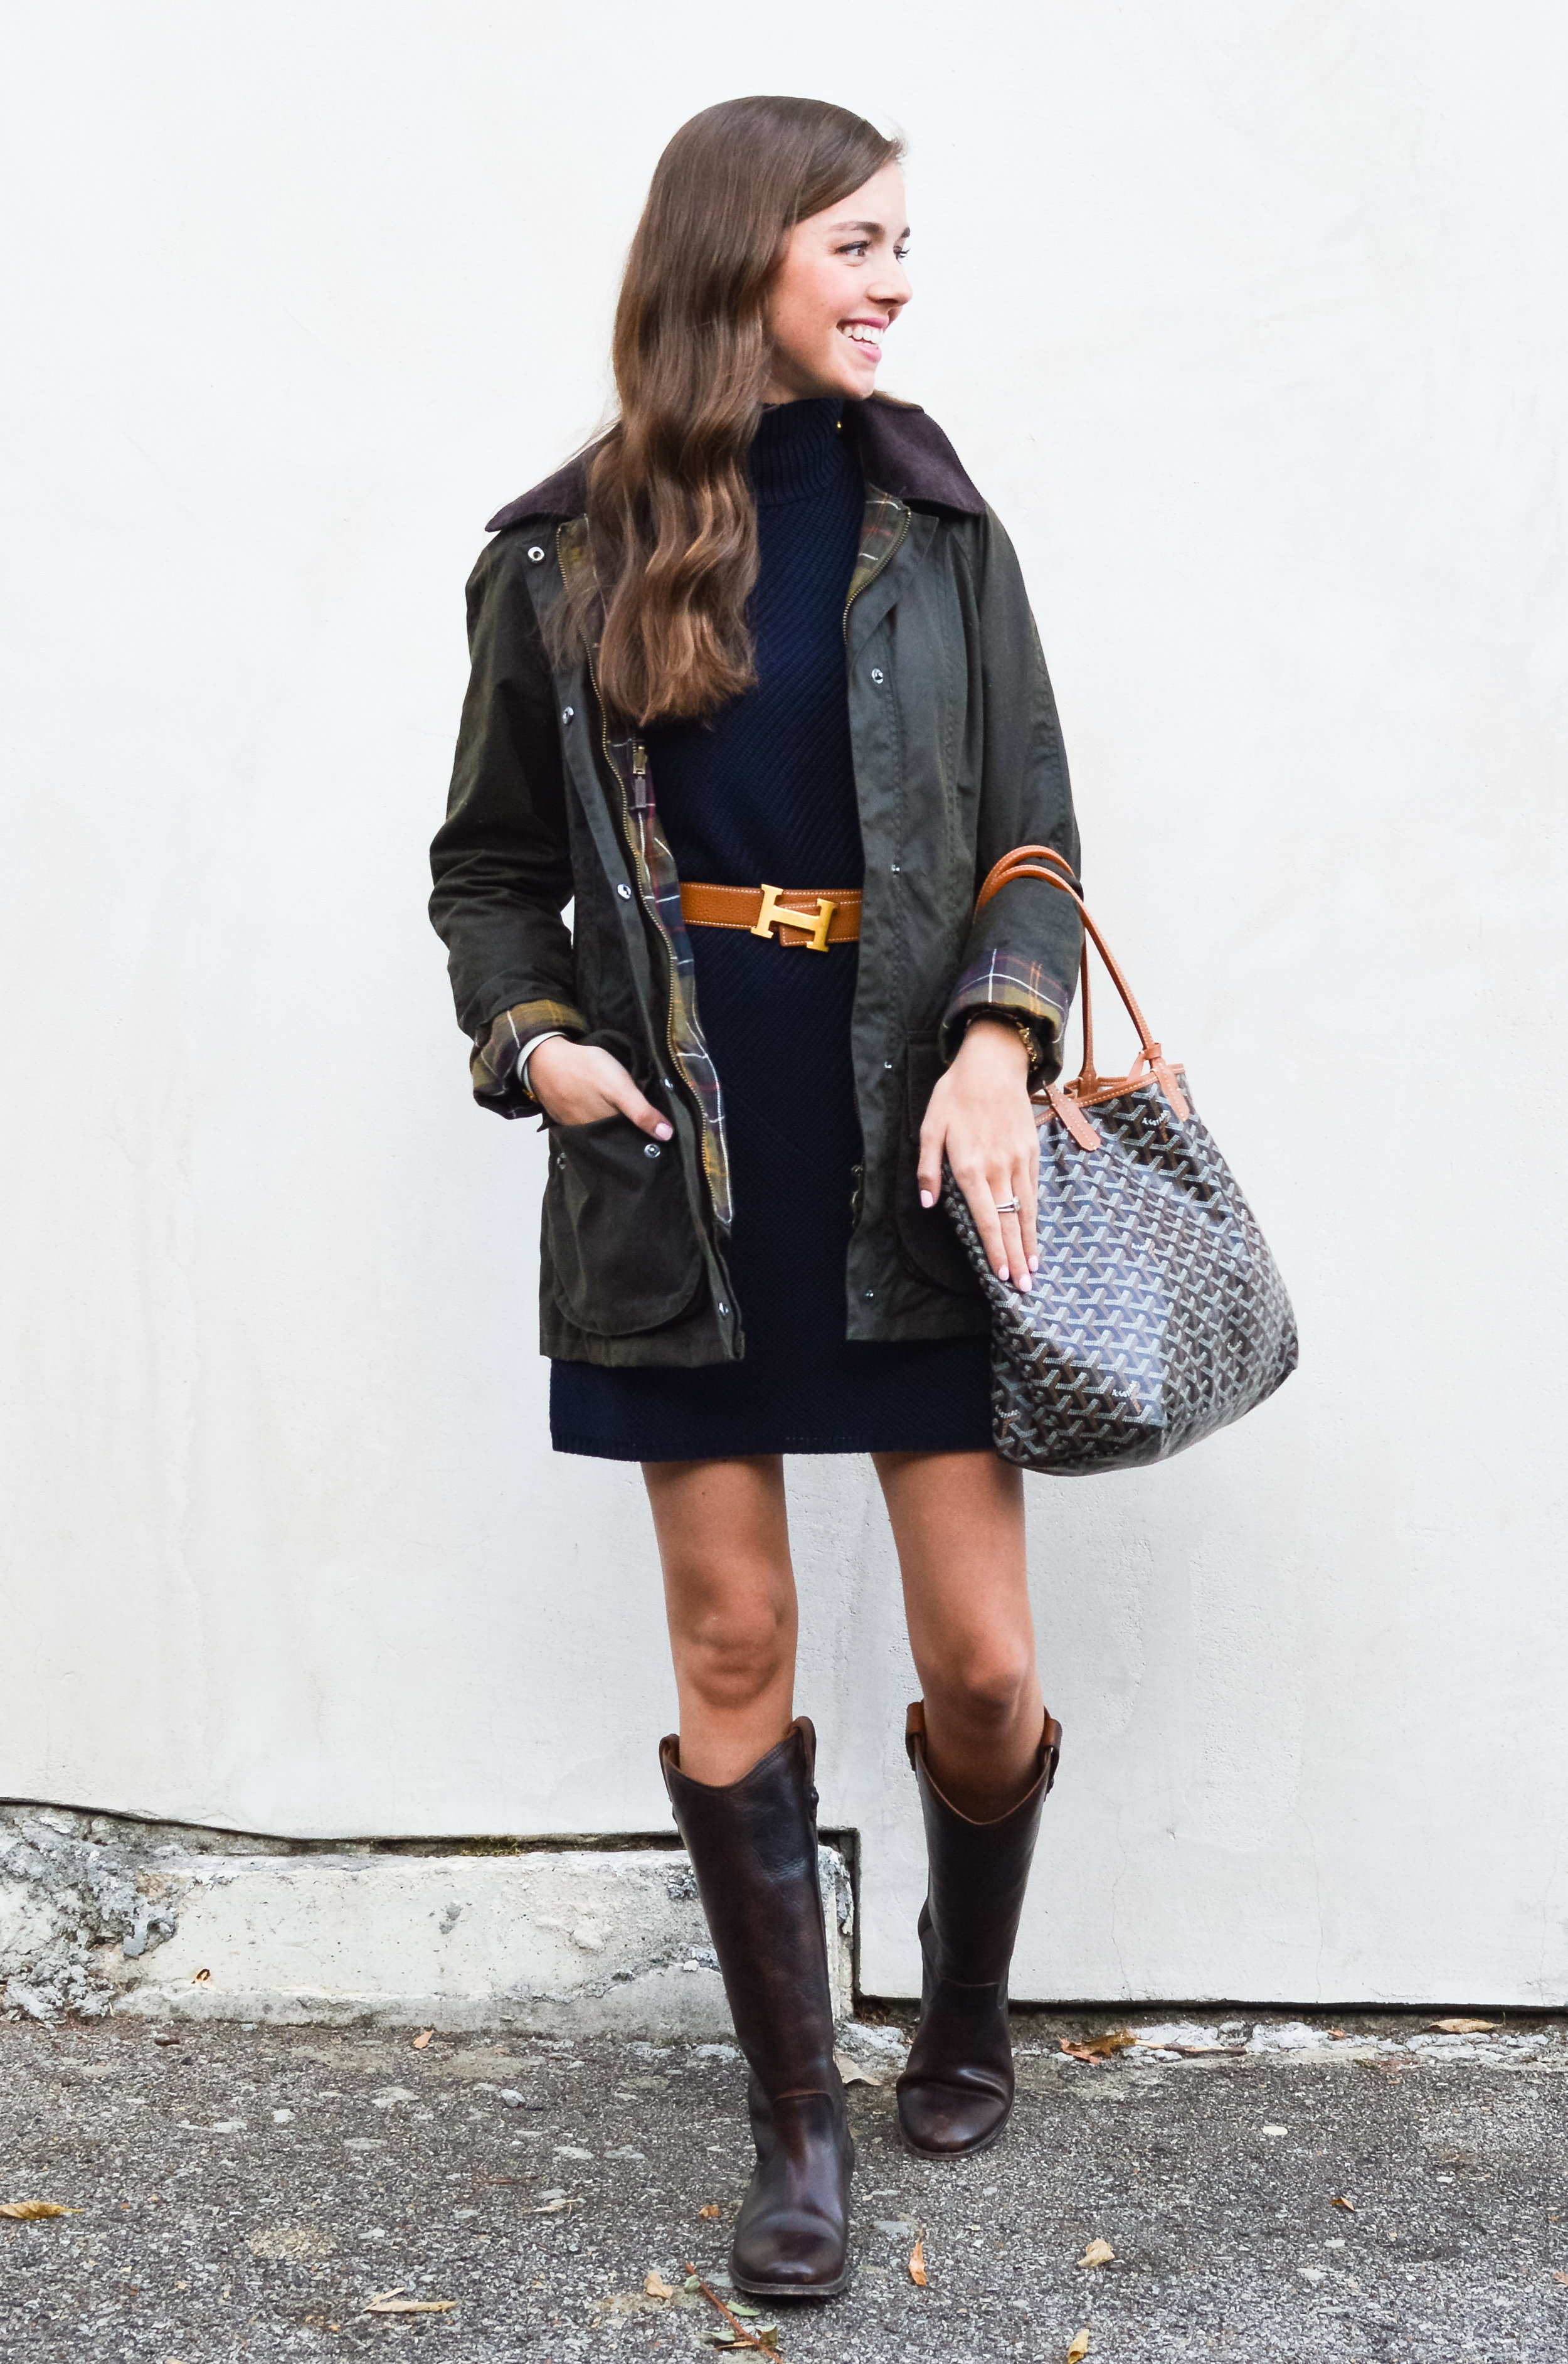 bf30188e454 fashion blogger lcb style tory burch sweater dress frye boots barbour  beadnell jacket (5 of